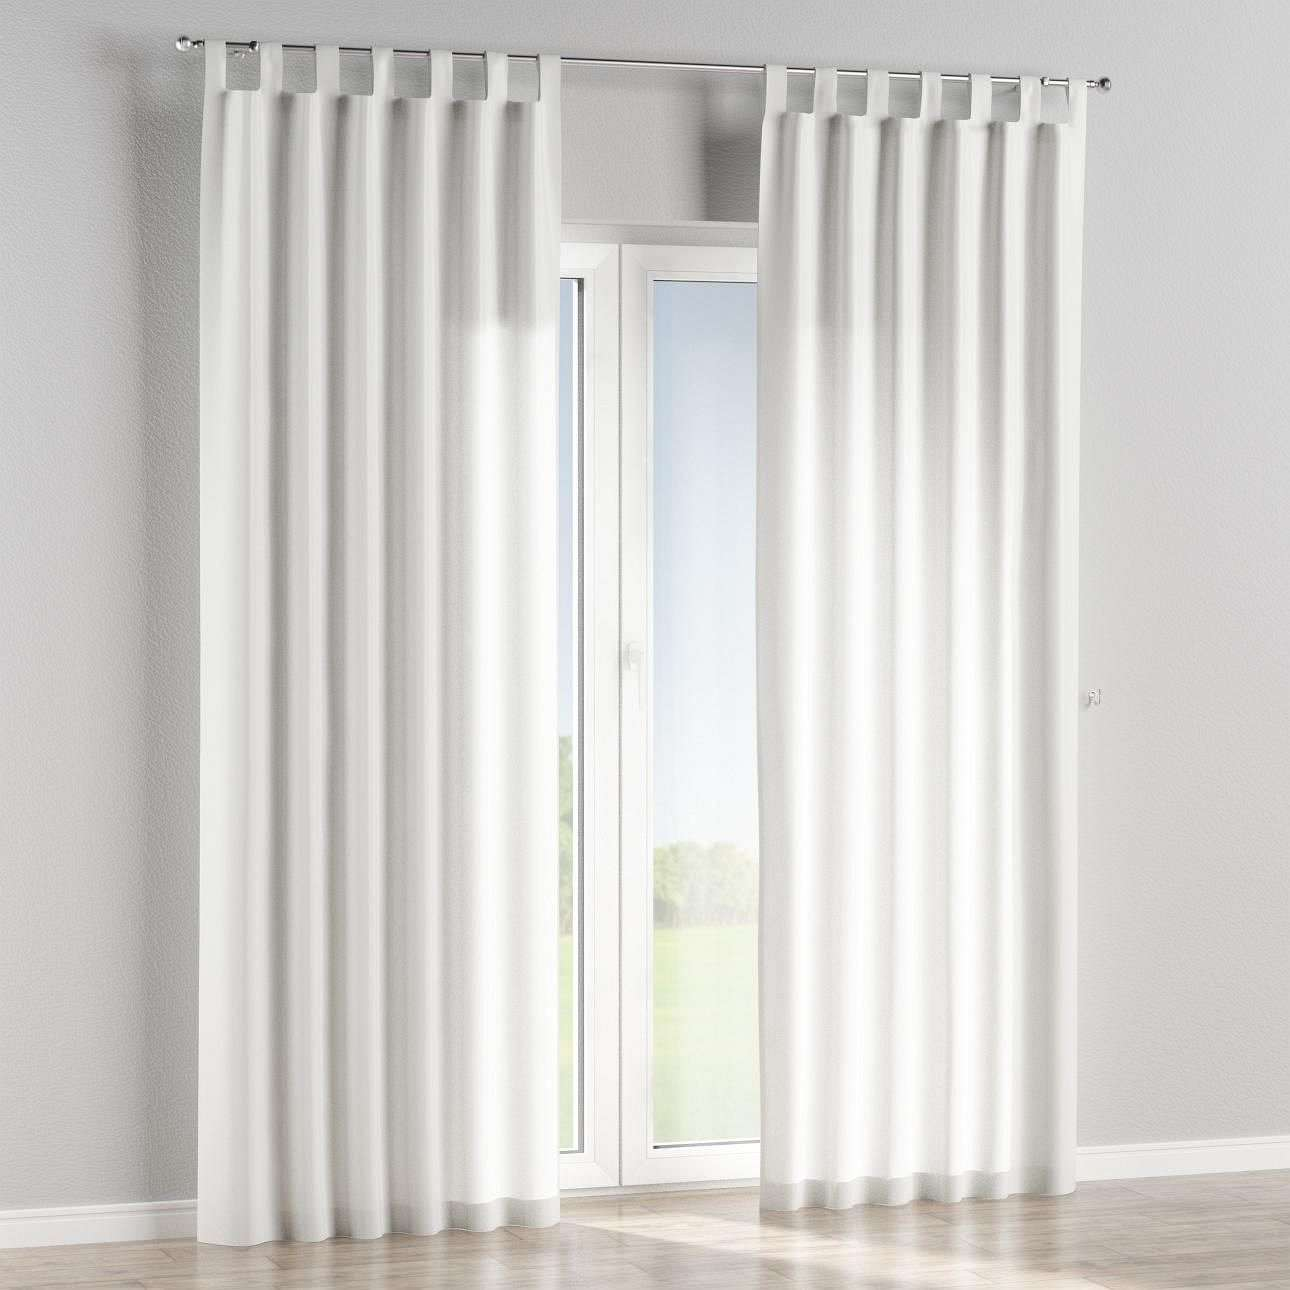 Tab top curtains in collection Taffeta , fabric: 103-95